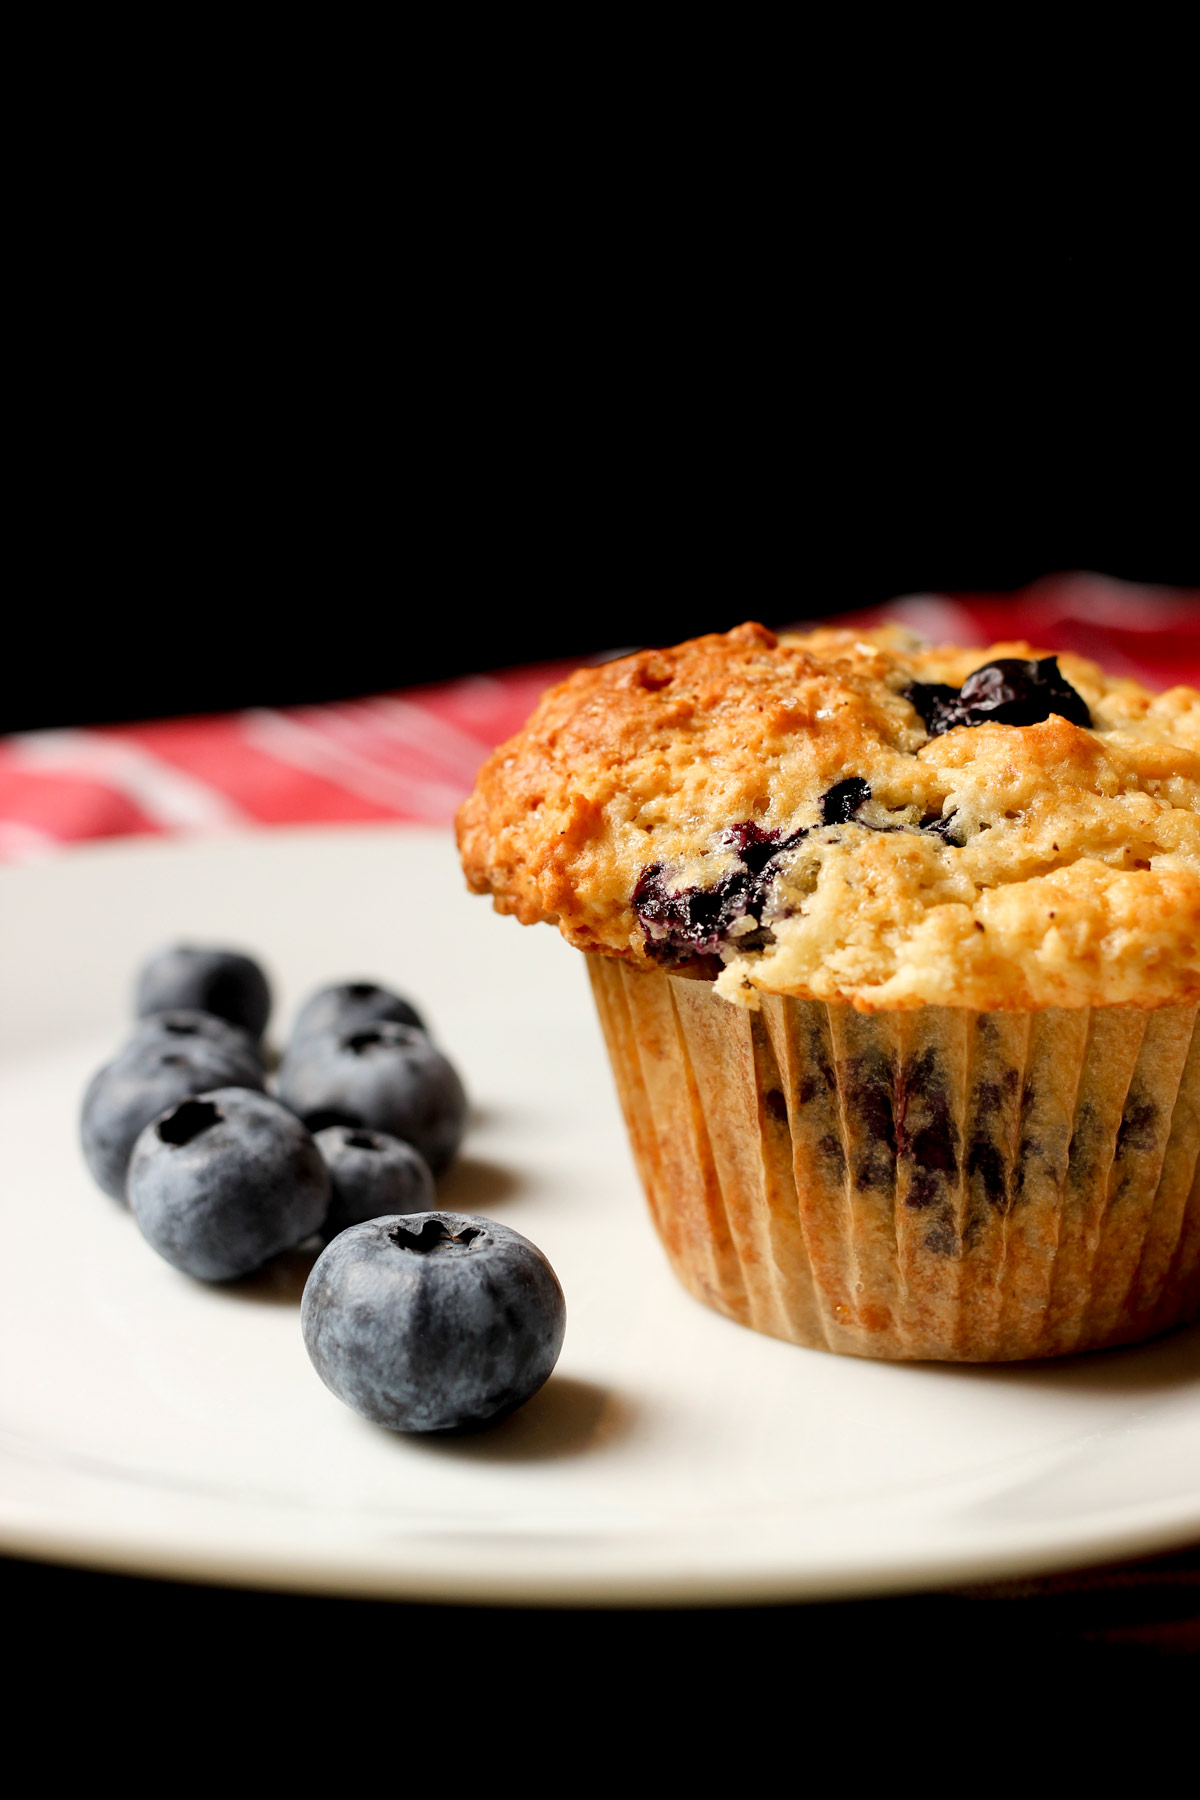 blueberry muffin on white plate with blueberries near a red cloth.